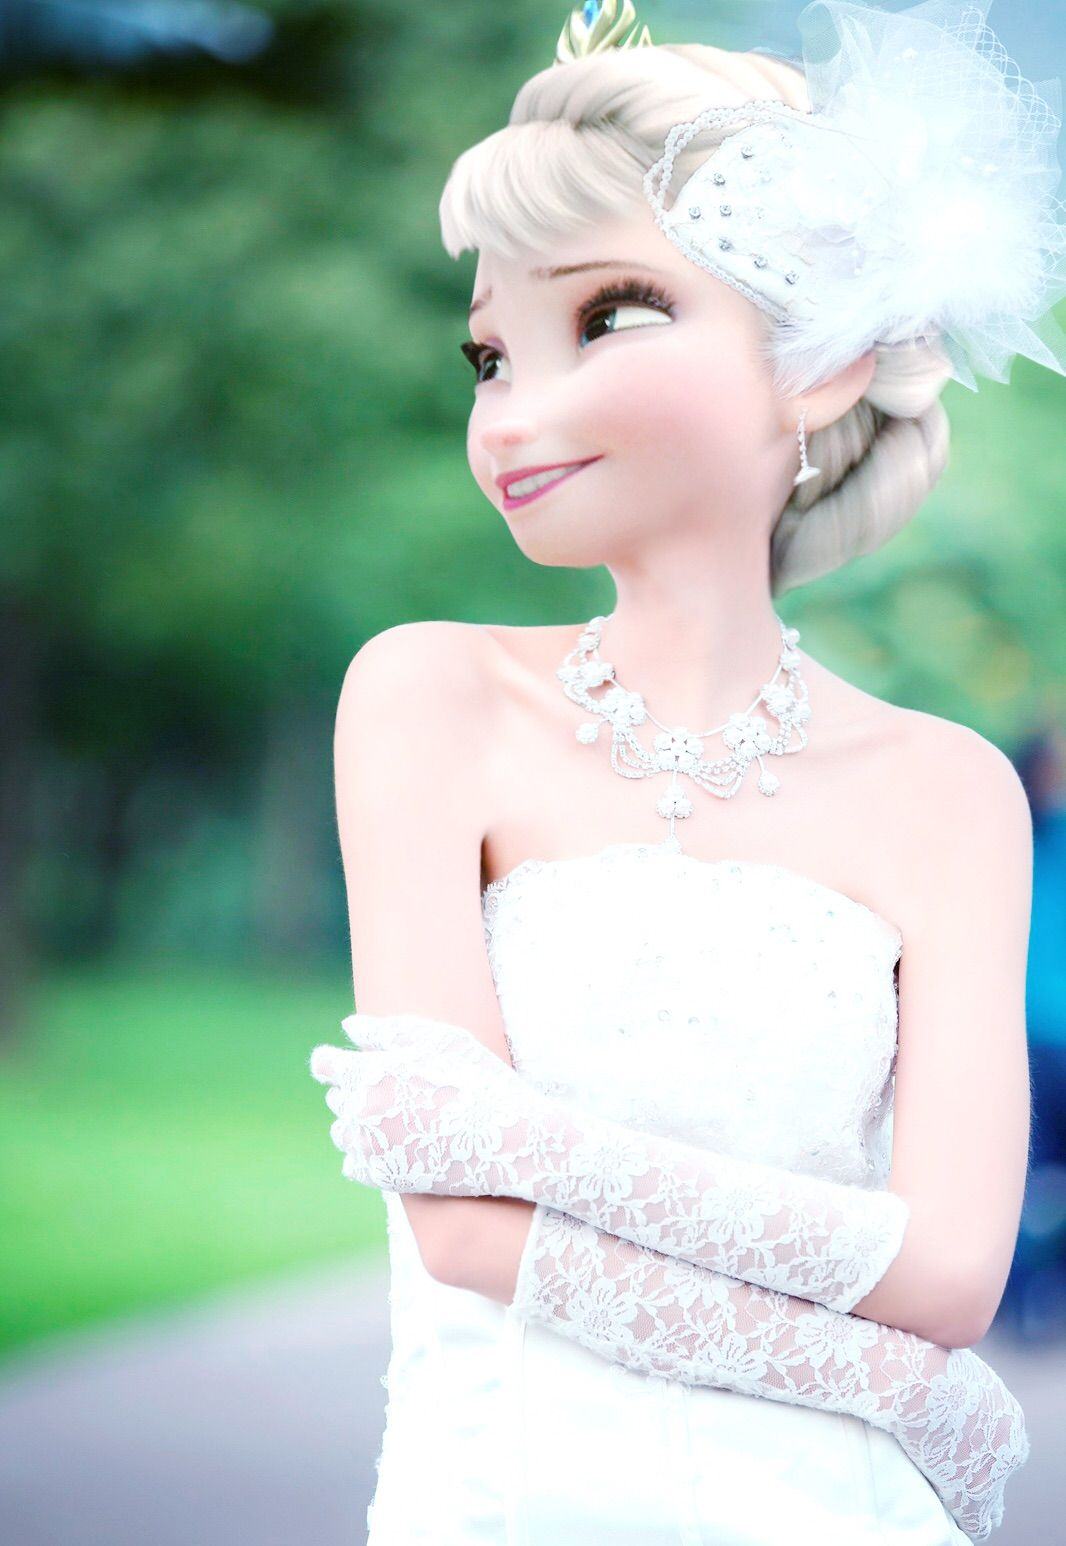 Pin By Nora Lala On The Big Four Disney Wedding Dresses Disney Princess Modern Disney Princess Images [ 1546 x 1066 Pixel ]